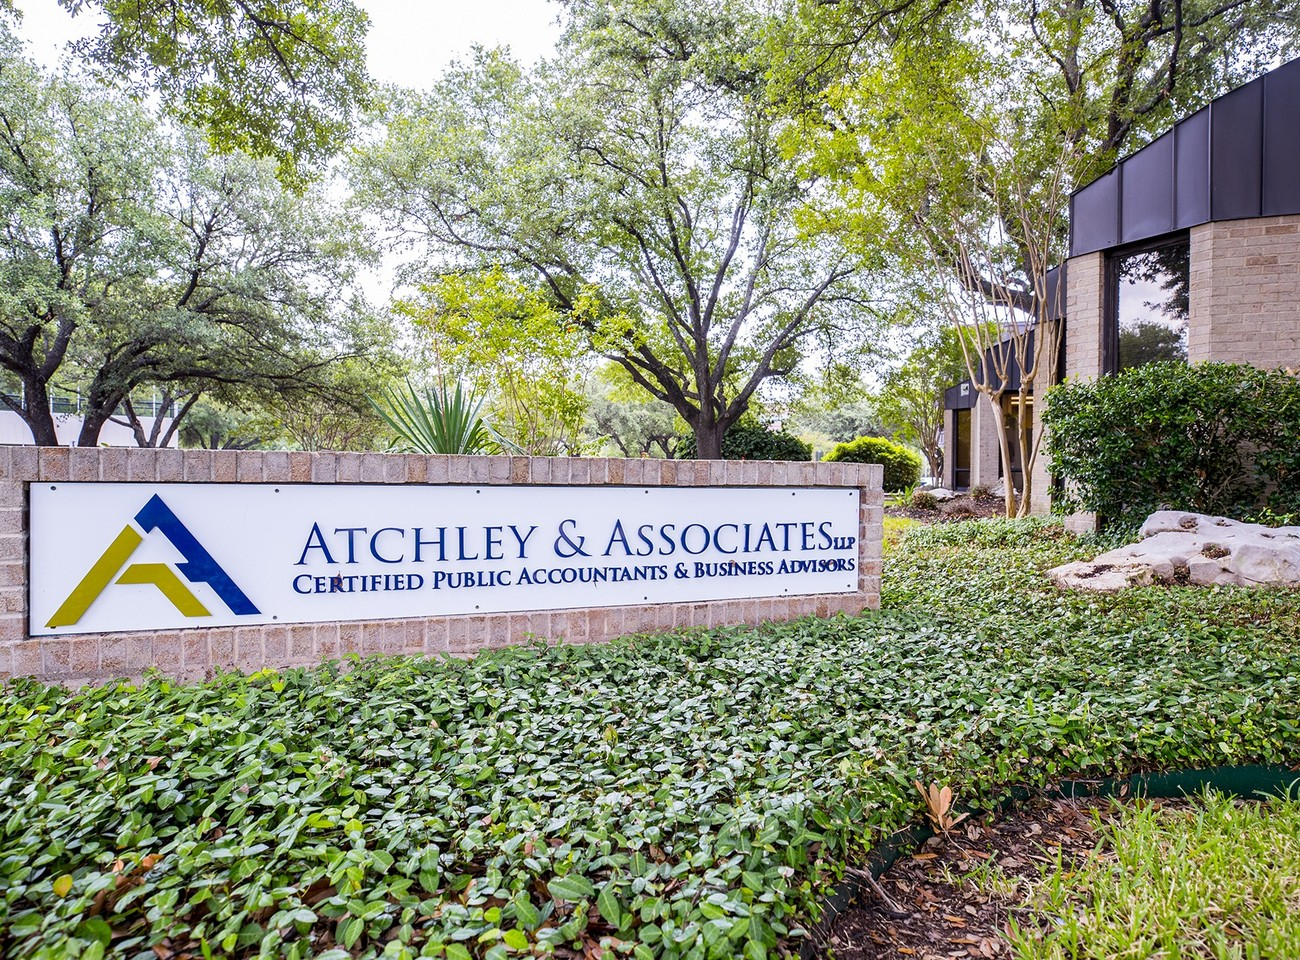 Atchley & Associates Careers